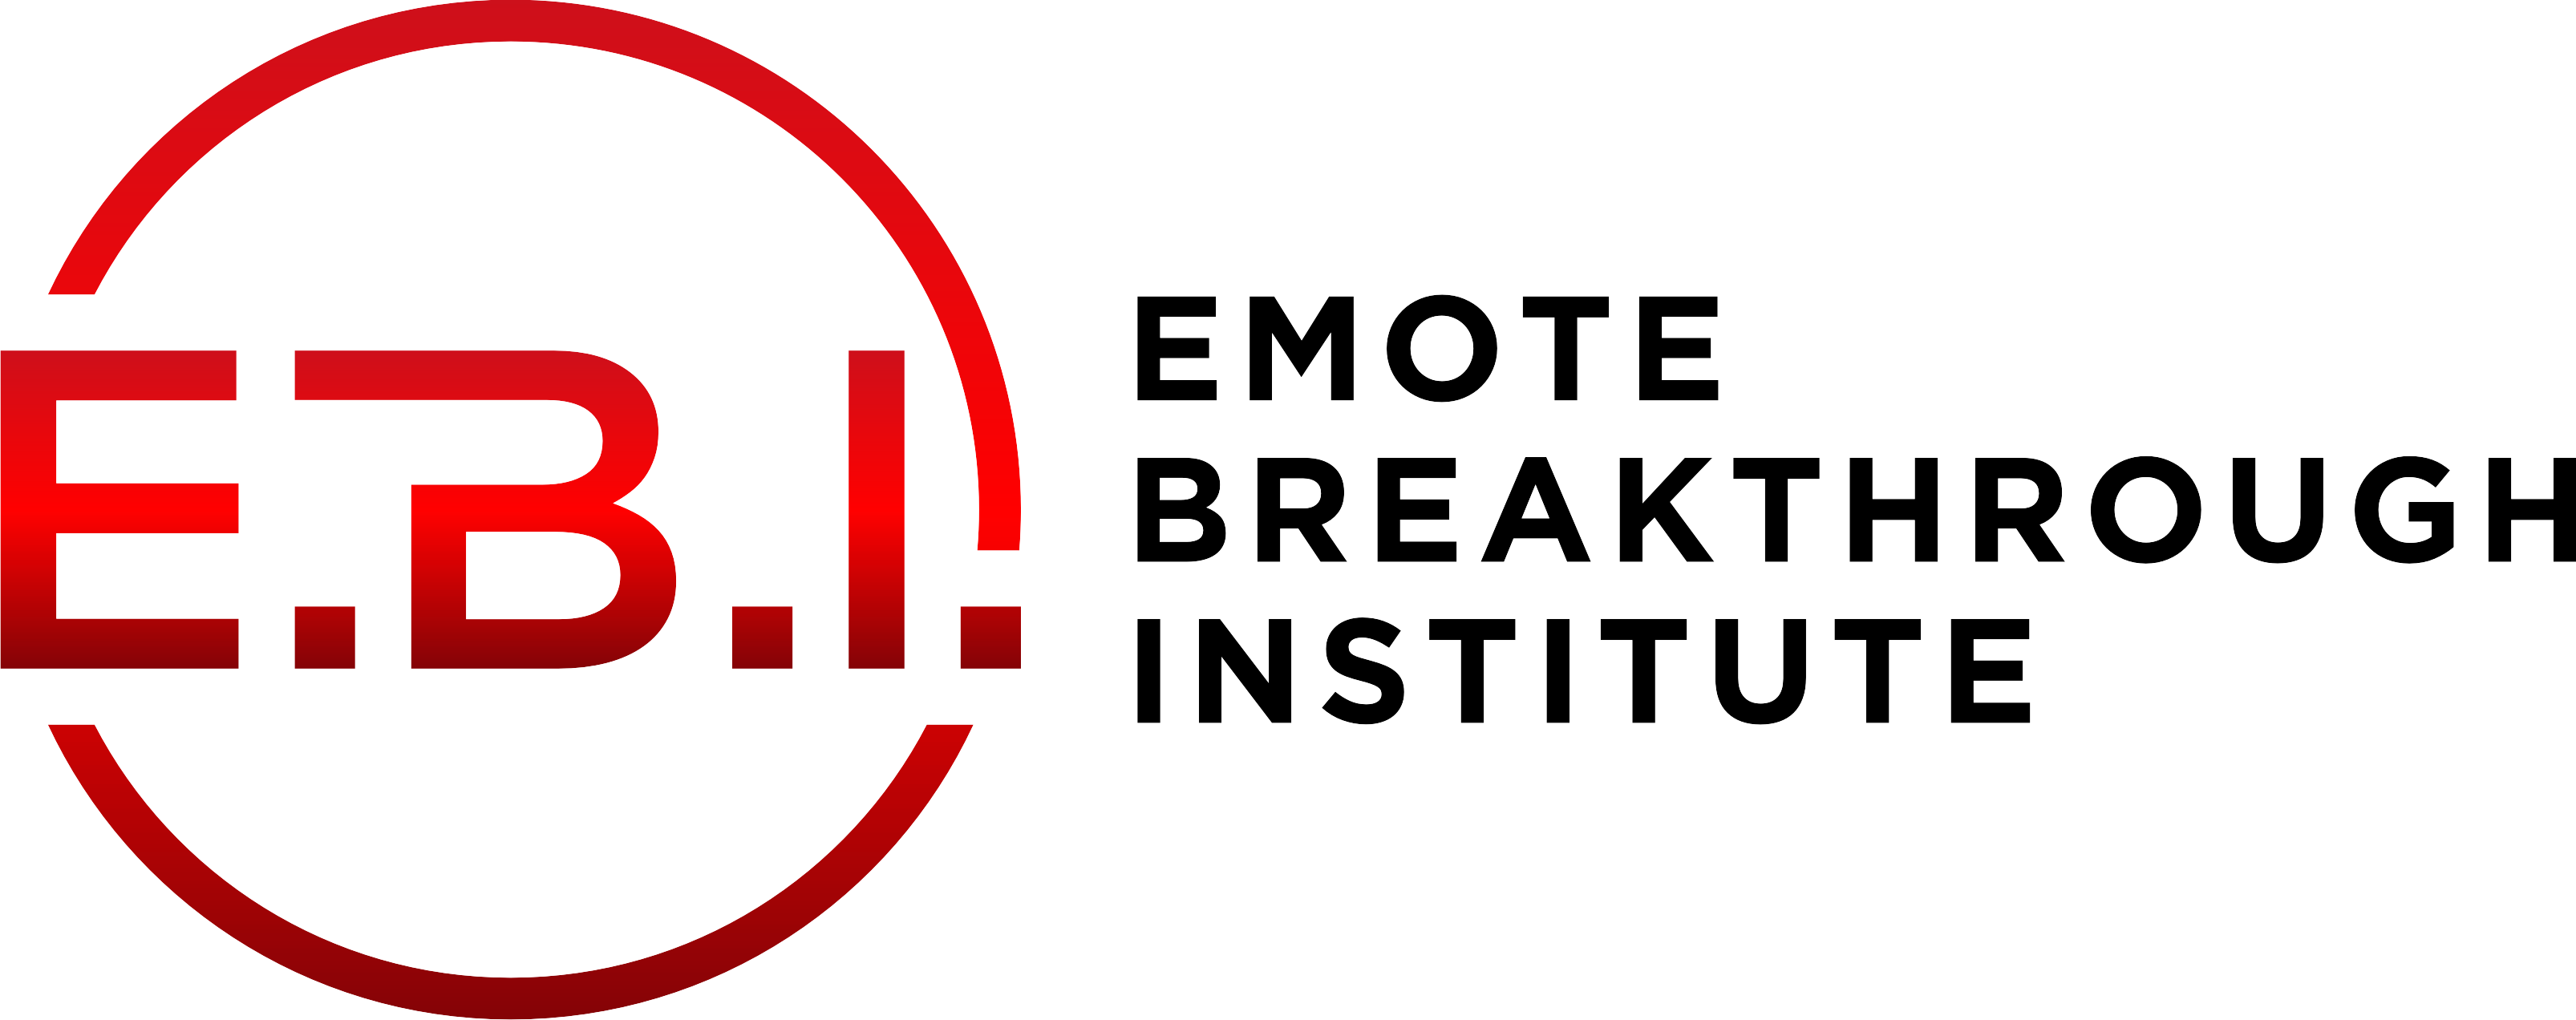 emotebreakthrough.com